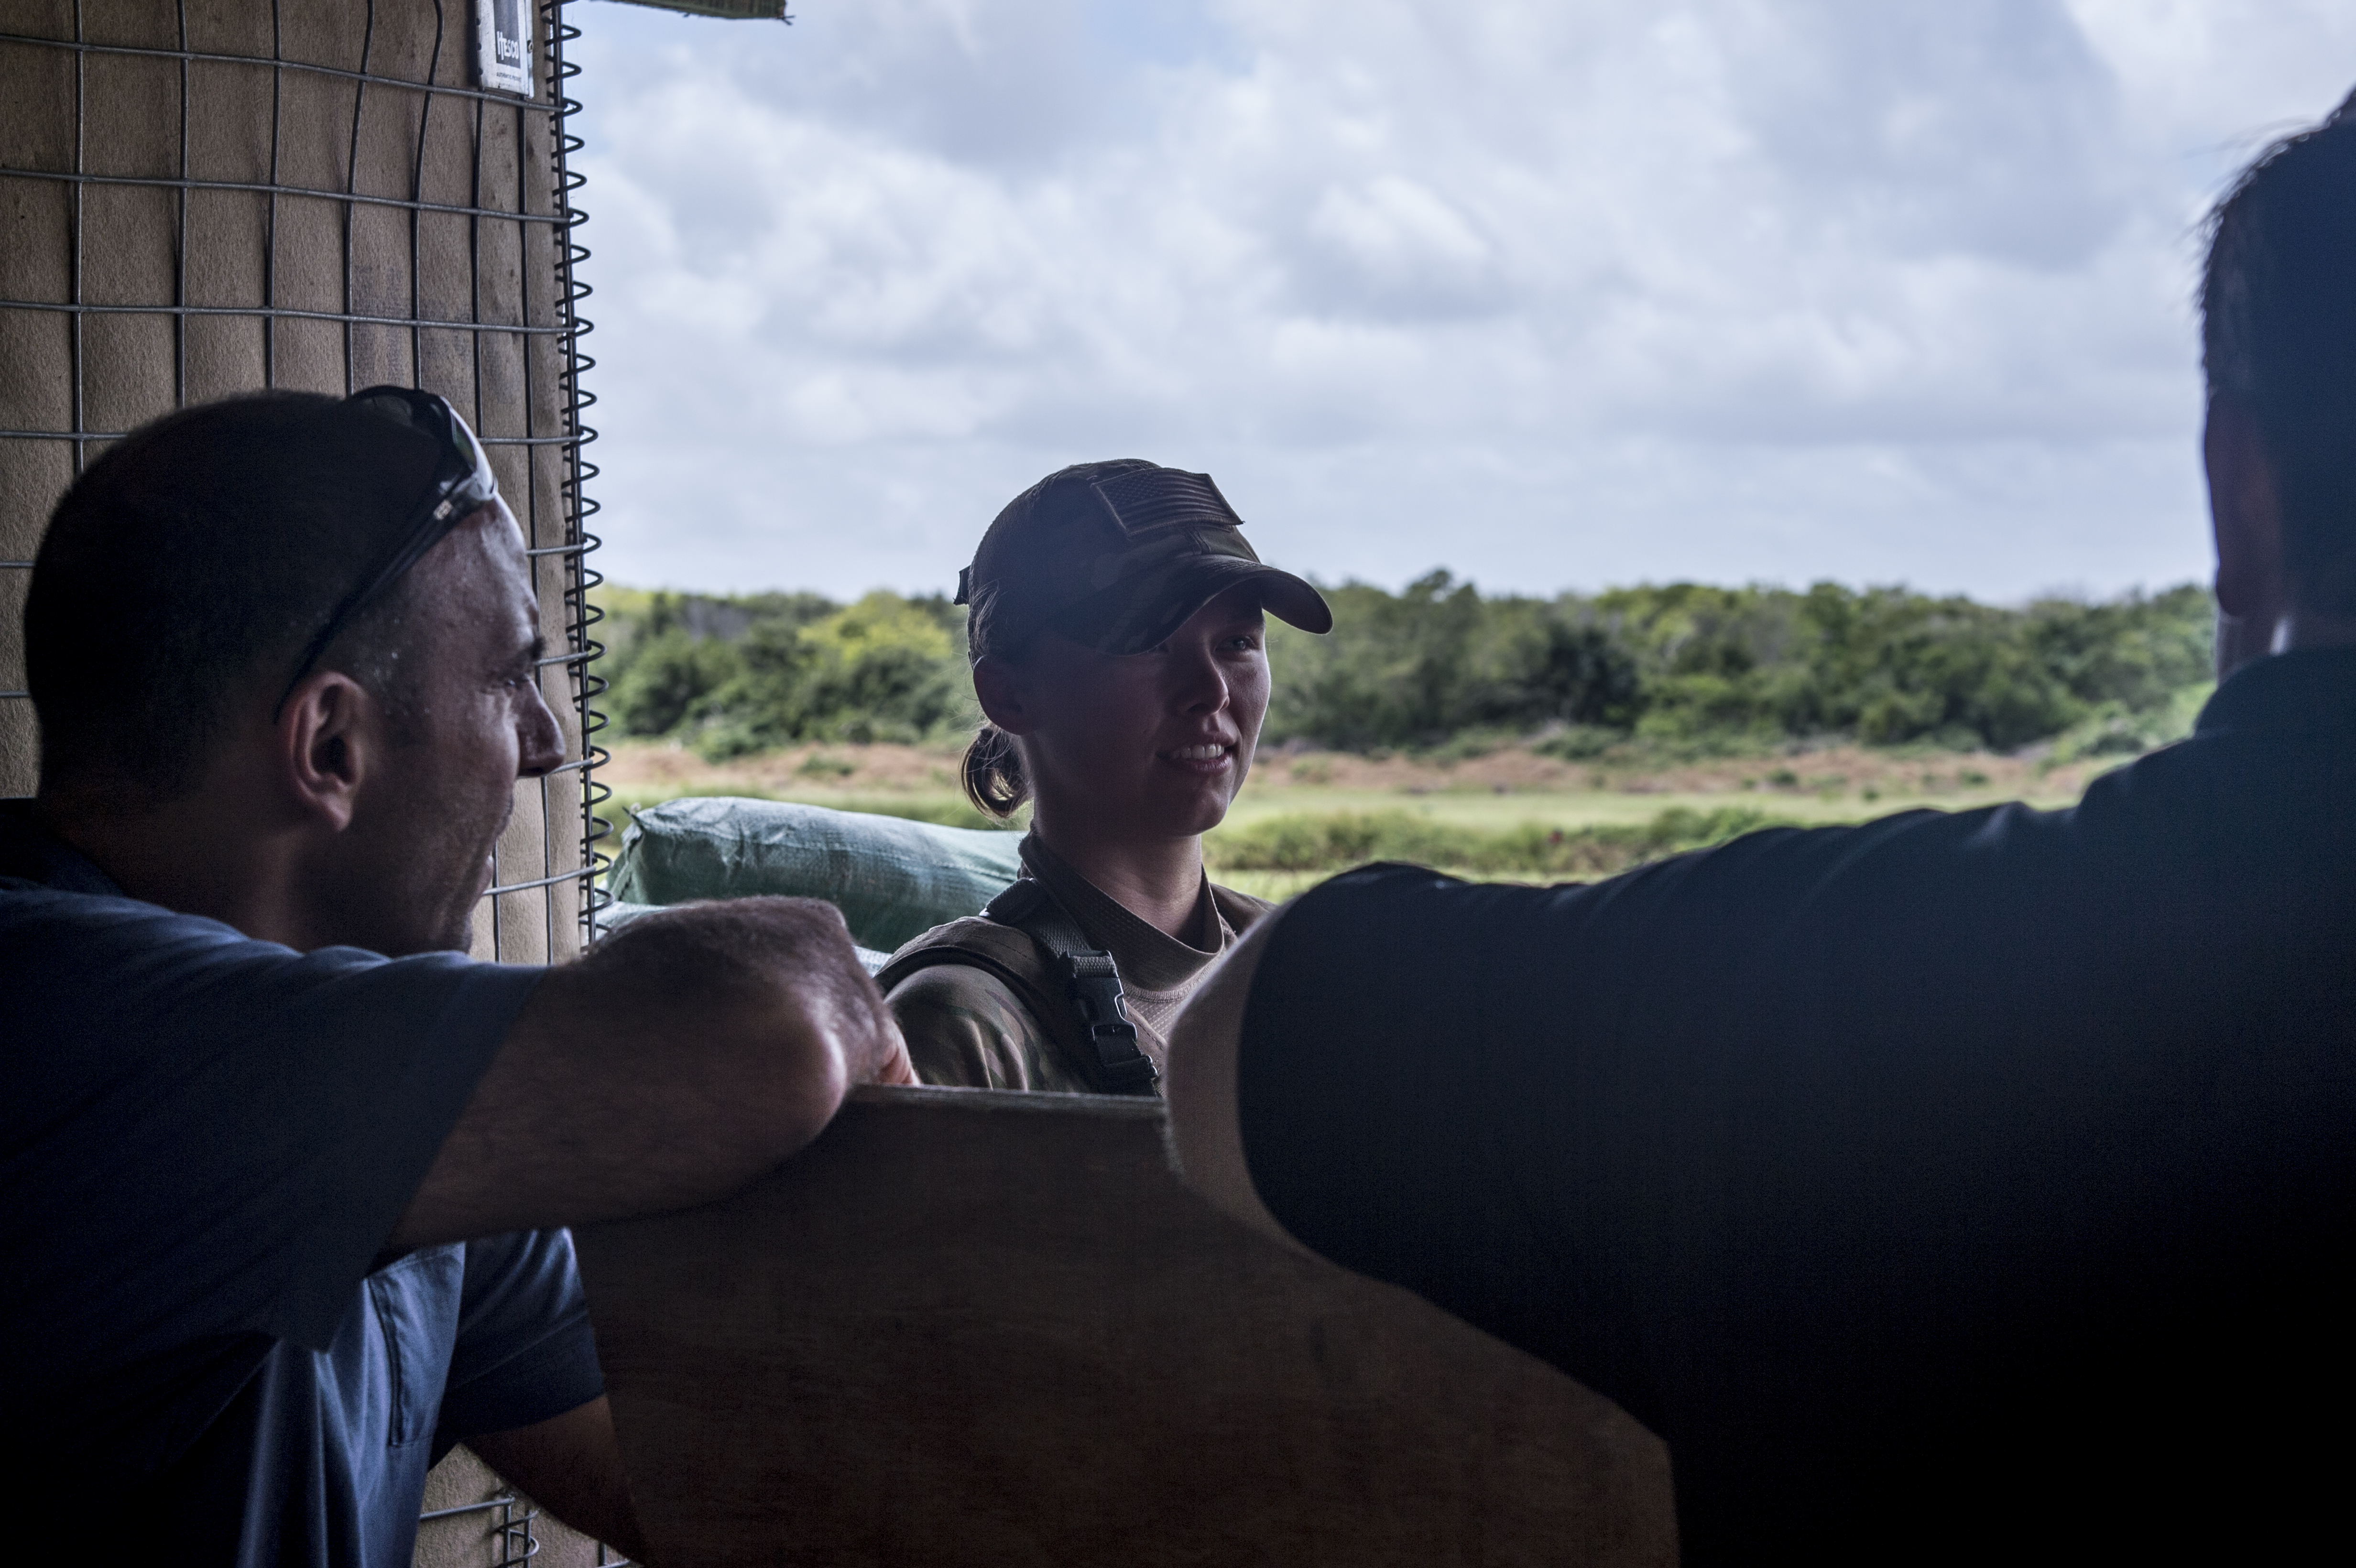 Members of a congressional delegation (CODEL) visit with a U.S. Airman at a defensive fighting position at a forward operating location within the Combined Joint Task Force-Horn of Africa area of responsibility on Aug. 27, 2017. During their three-day visit to the region, the CODEL met with U.S. service members and learned more about the U.S. military mission in East Africa. The CODEL included the following congressmen, all of whom are on the House Armed Service Committee; Rep. Austin Scott (R-Ga.) representing the 8th District of Georgia; Rep. Jimmy Panetta (D-Calif.) representing the 20th District of California; and Rep. Marc Veasey (D-Texas) representing the 33rd District of Texas. (U.S. Air National Guard photo by Tech. Sgt. Joe Harwood)